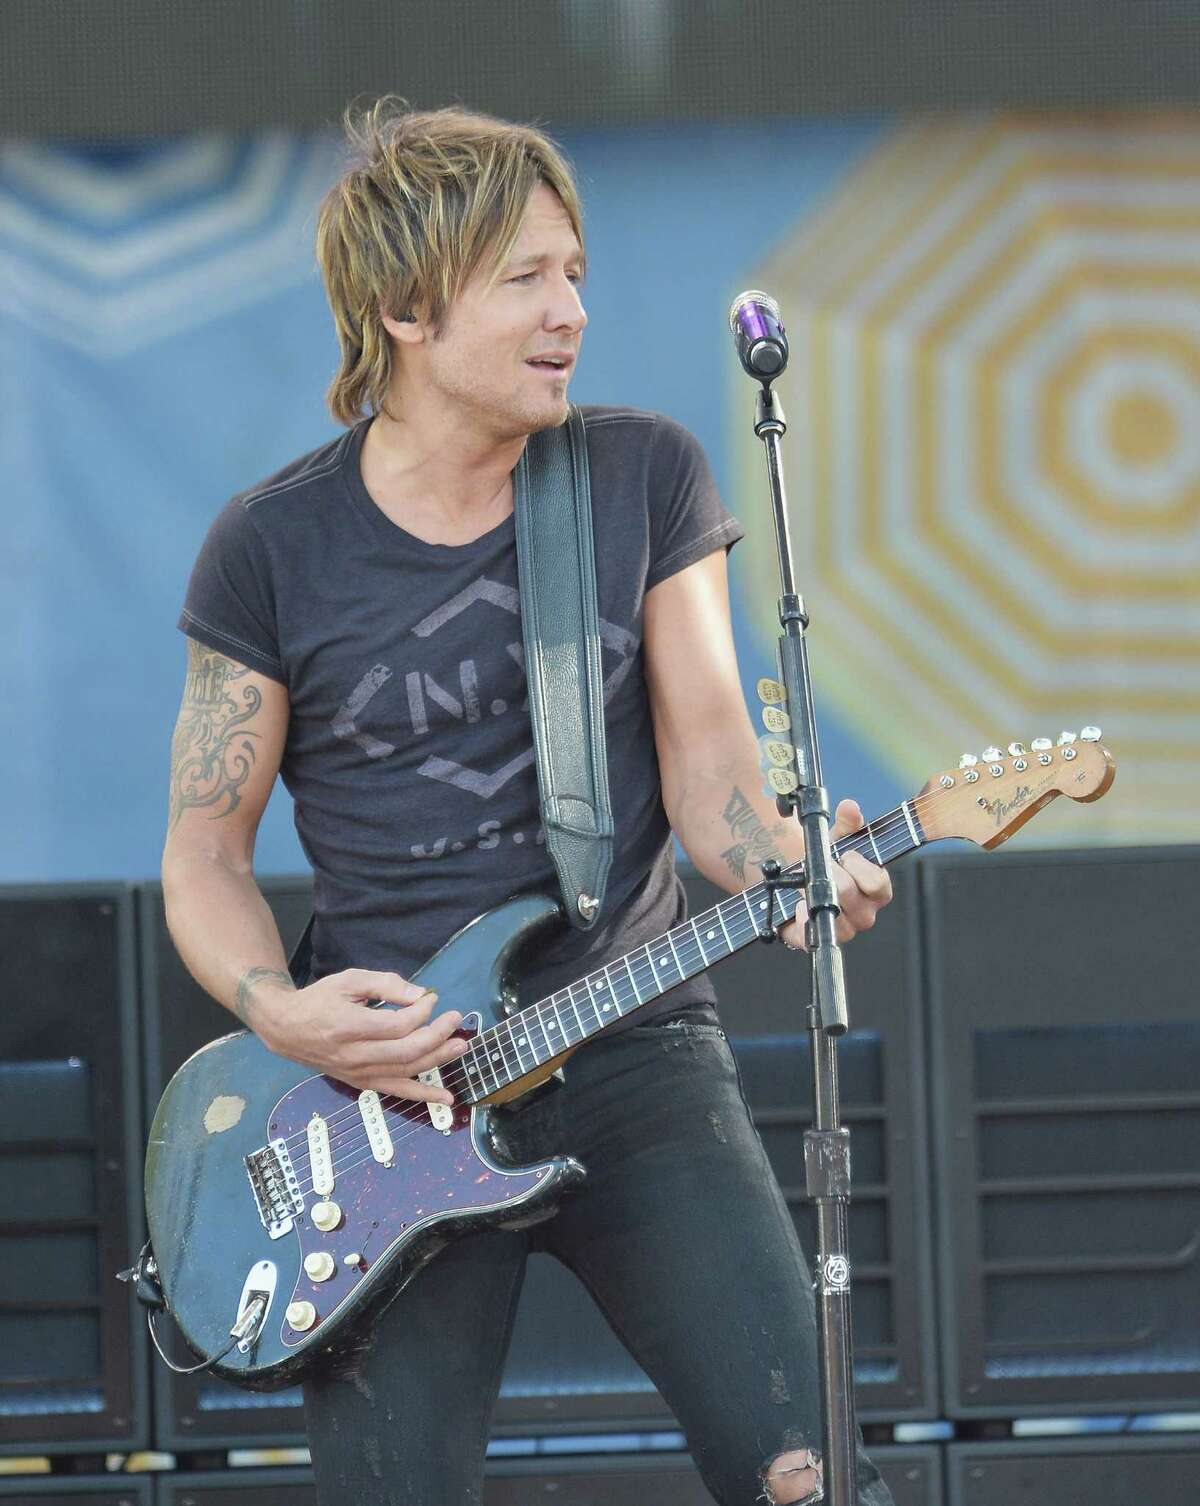 """Keith Urban, Feb. 14: Country music superstar, sex symbol and guitar hero (and former """"American Idol"""" judge) has had more than a dozen No. 1 hits, including """"But For the Grace of God,"""" """"Somebody Like You,"""" """"Days Go By,"""" """"Better Life"""" and """"We Were Us"""" with Miranda Lambert. Urban, who is married to Nicole Kidman, is still riding high with """"Fuse"""" and his latest Academy of Country Music Awards."""